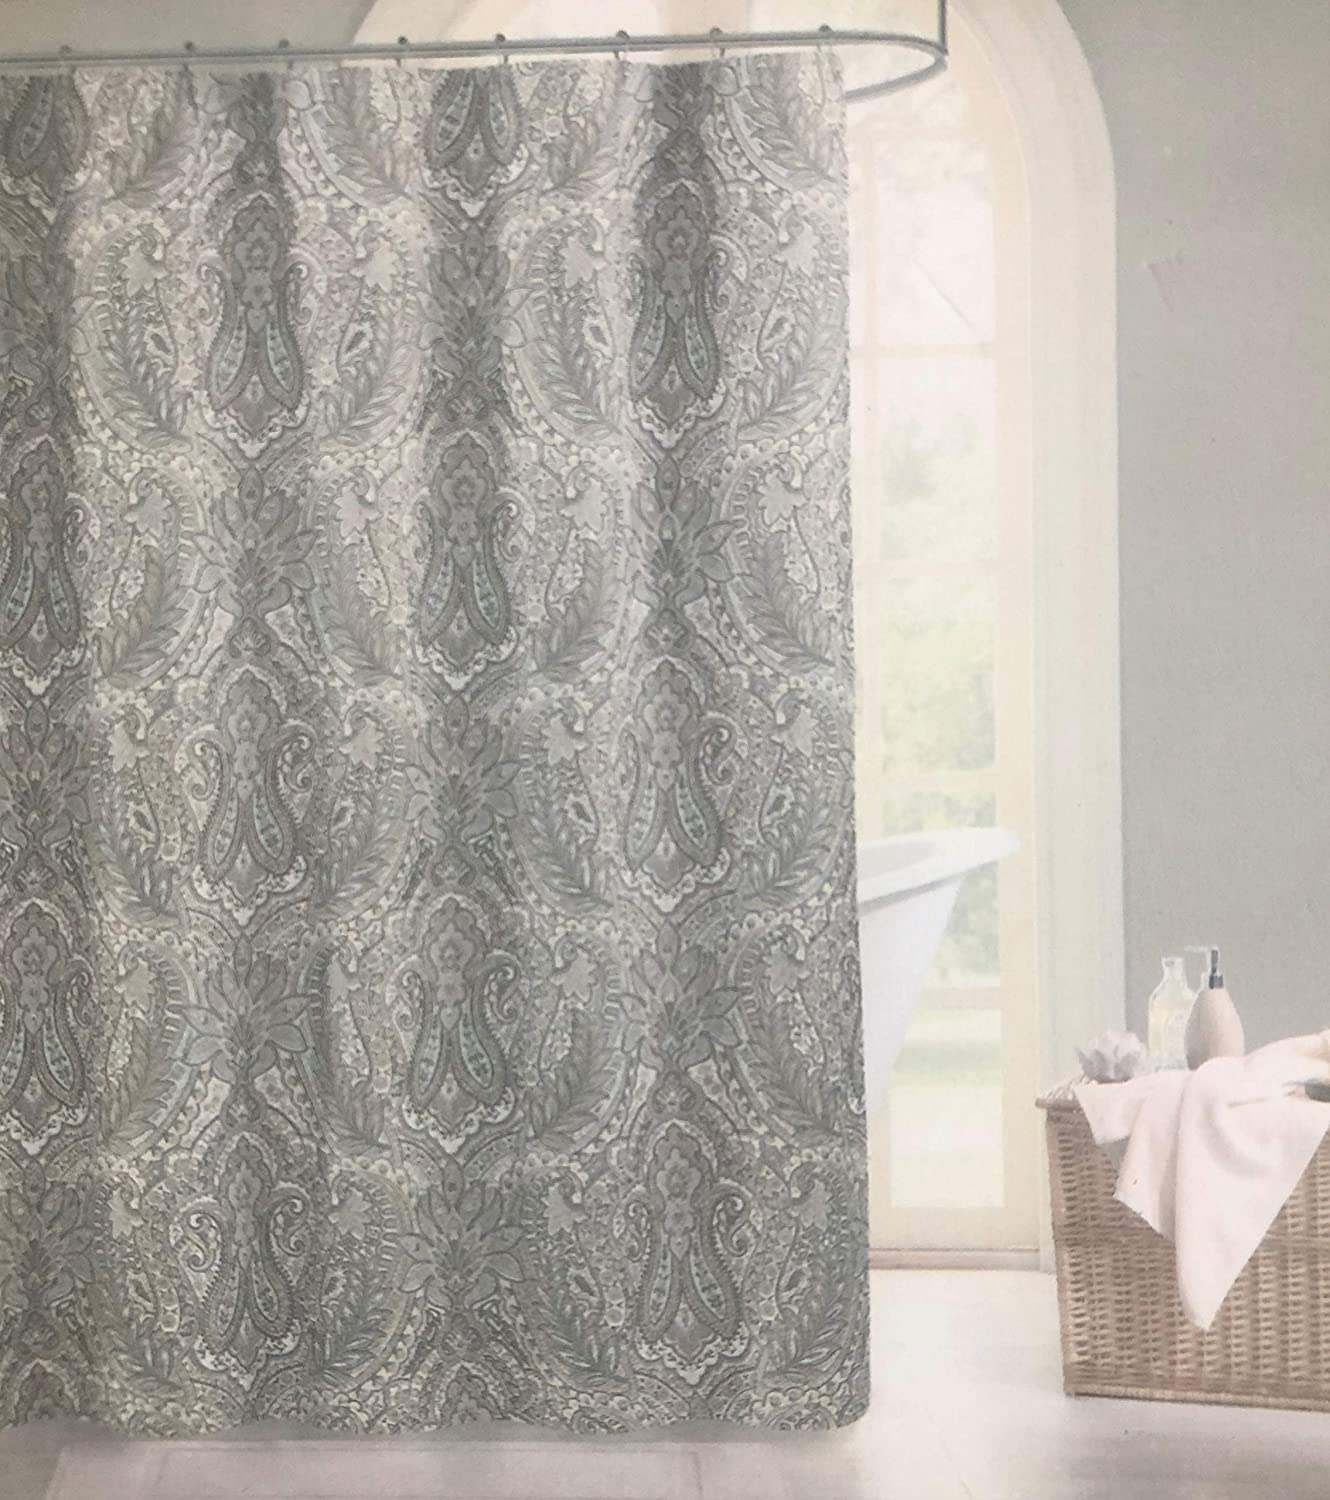 Nadia Luxury Cotton Blend Shower Curtain Gray Turquoise Taupe Grey Taupe Large Medallions Paisley Scroll Design Tahari